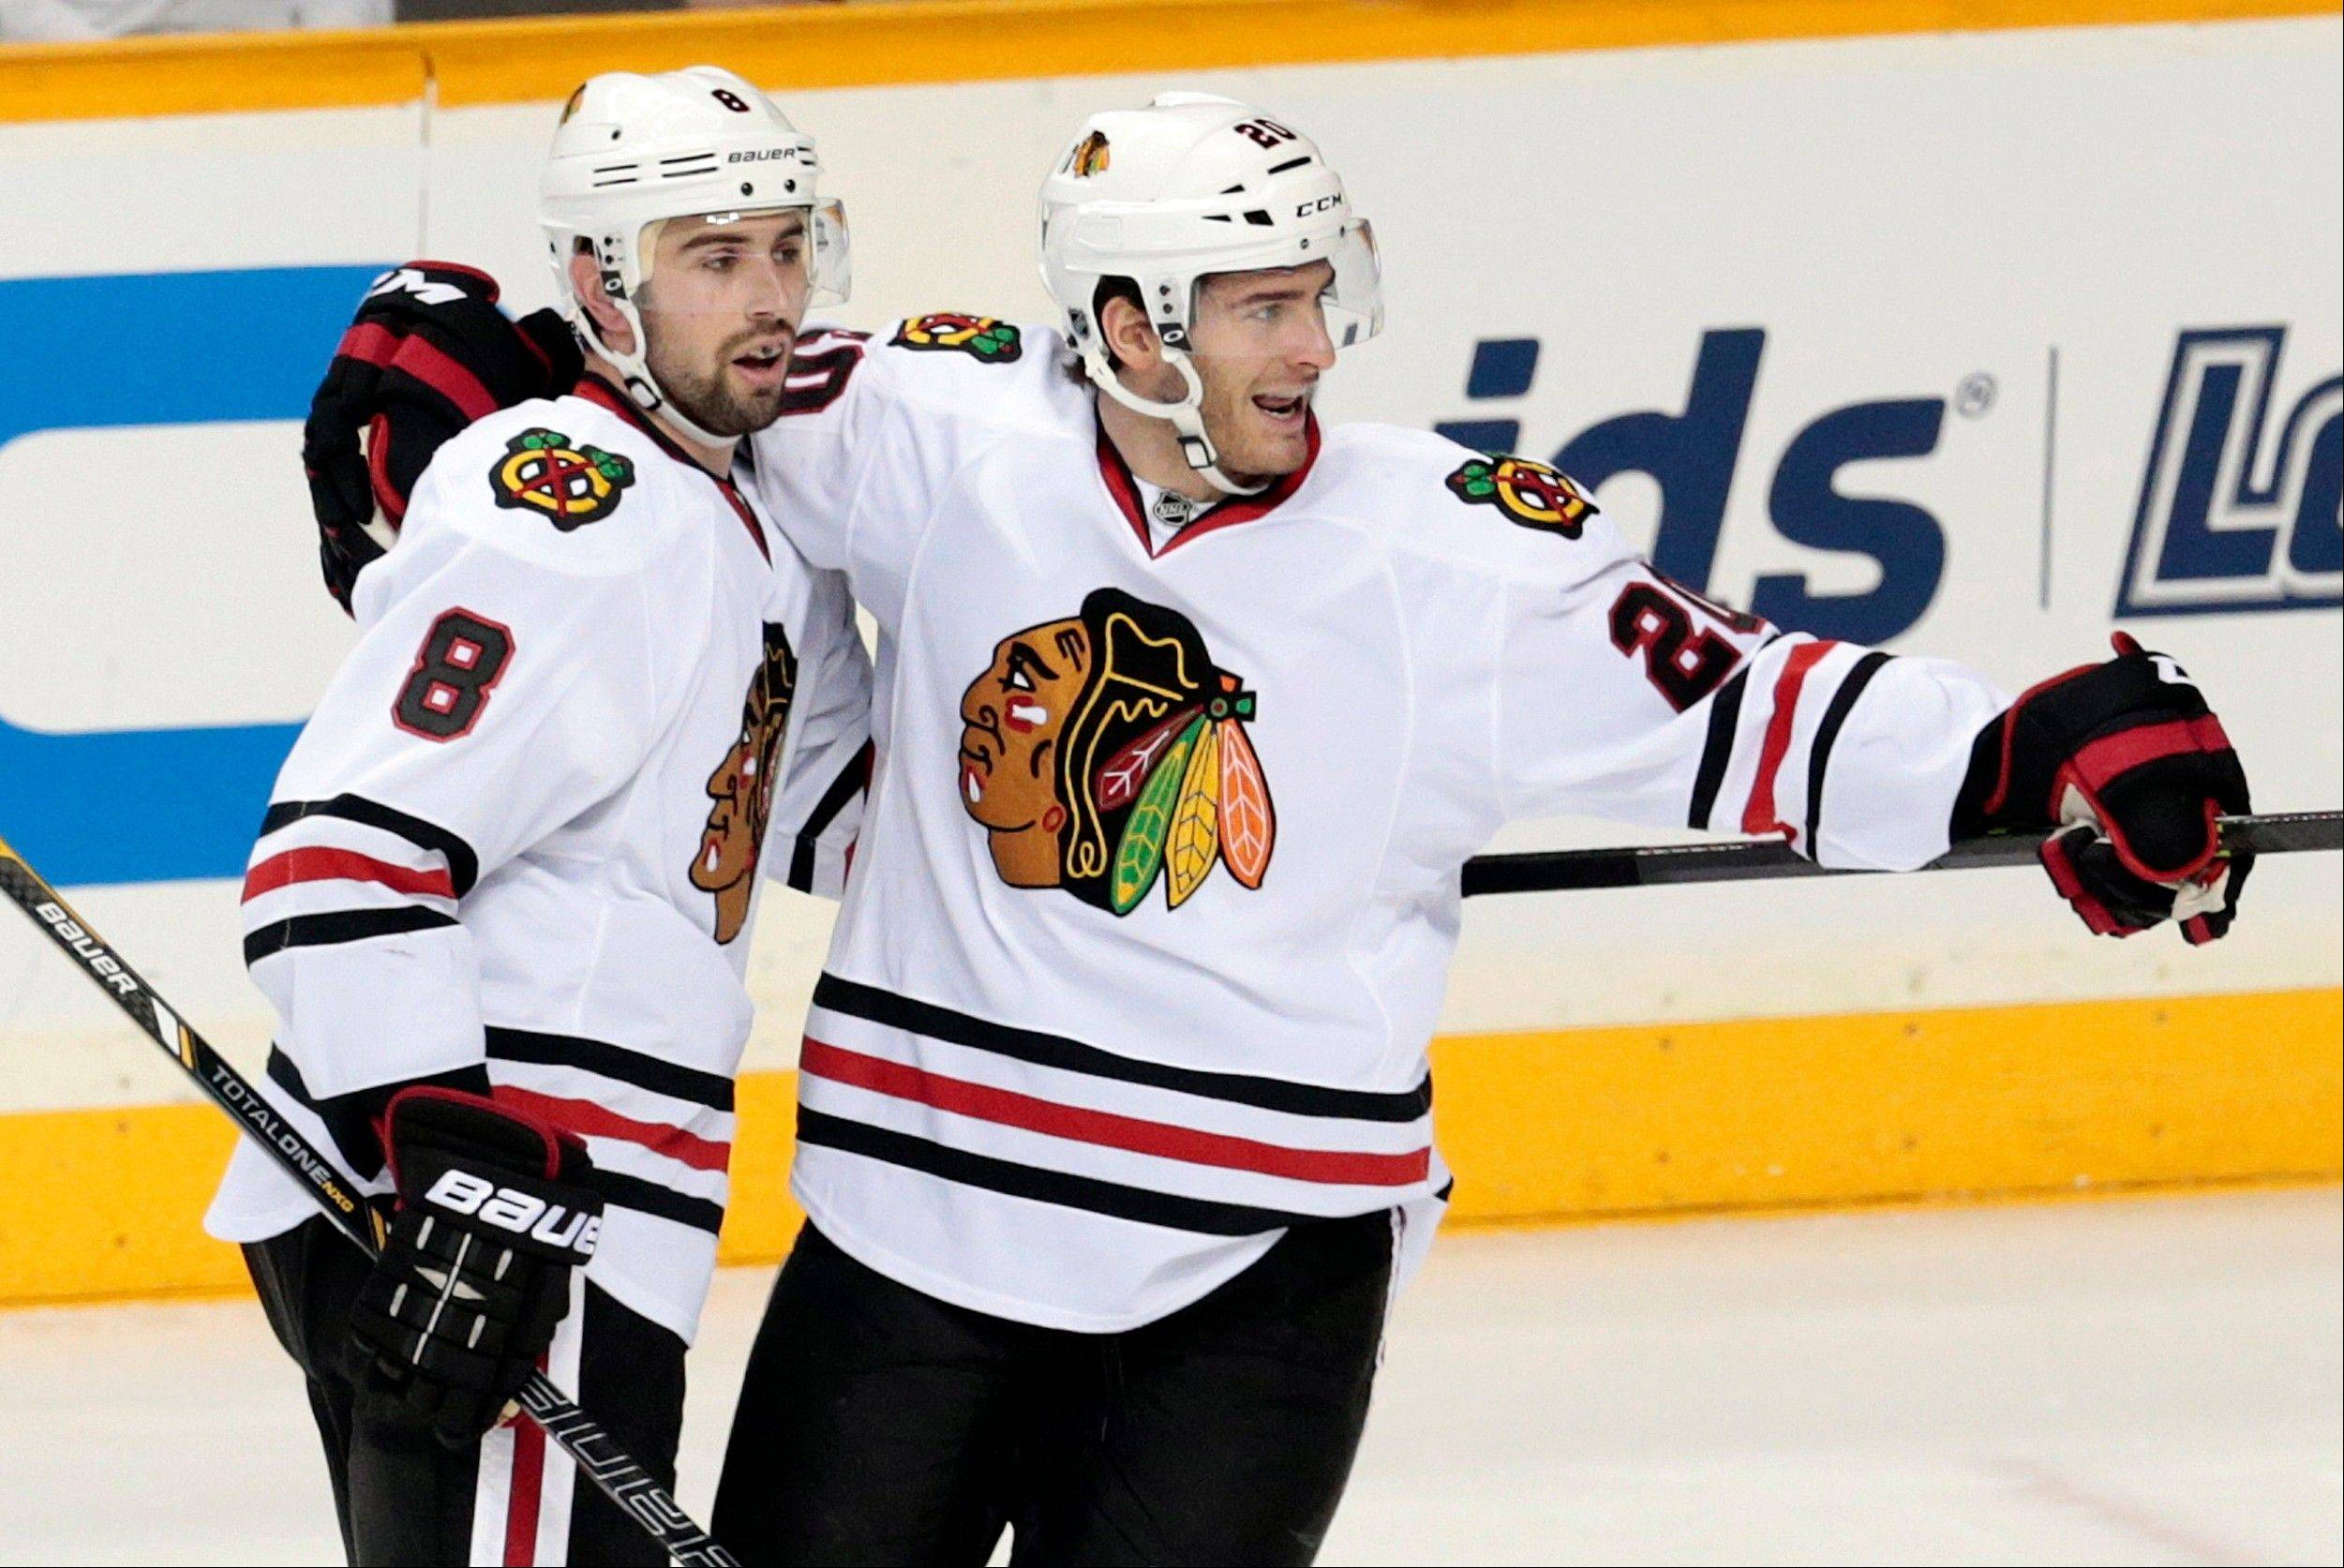 Chicago Blackhawks defenseman Nick Leddy (8) celebrates with Brandon Saad after Leddy scored against the Nashville Predators in the second period of an NHL hockey game Tuesday, Dec. 17, 2013, in Nashville, Tenn.